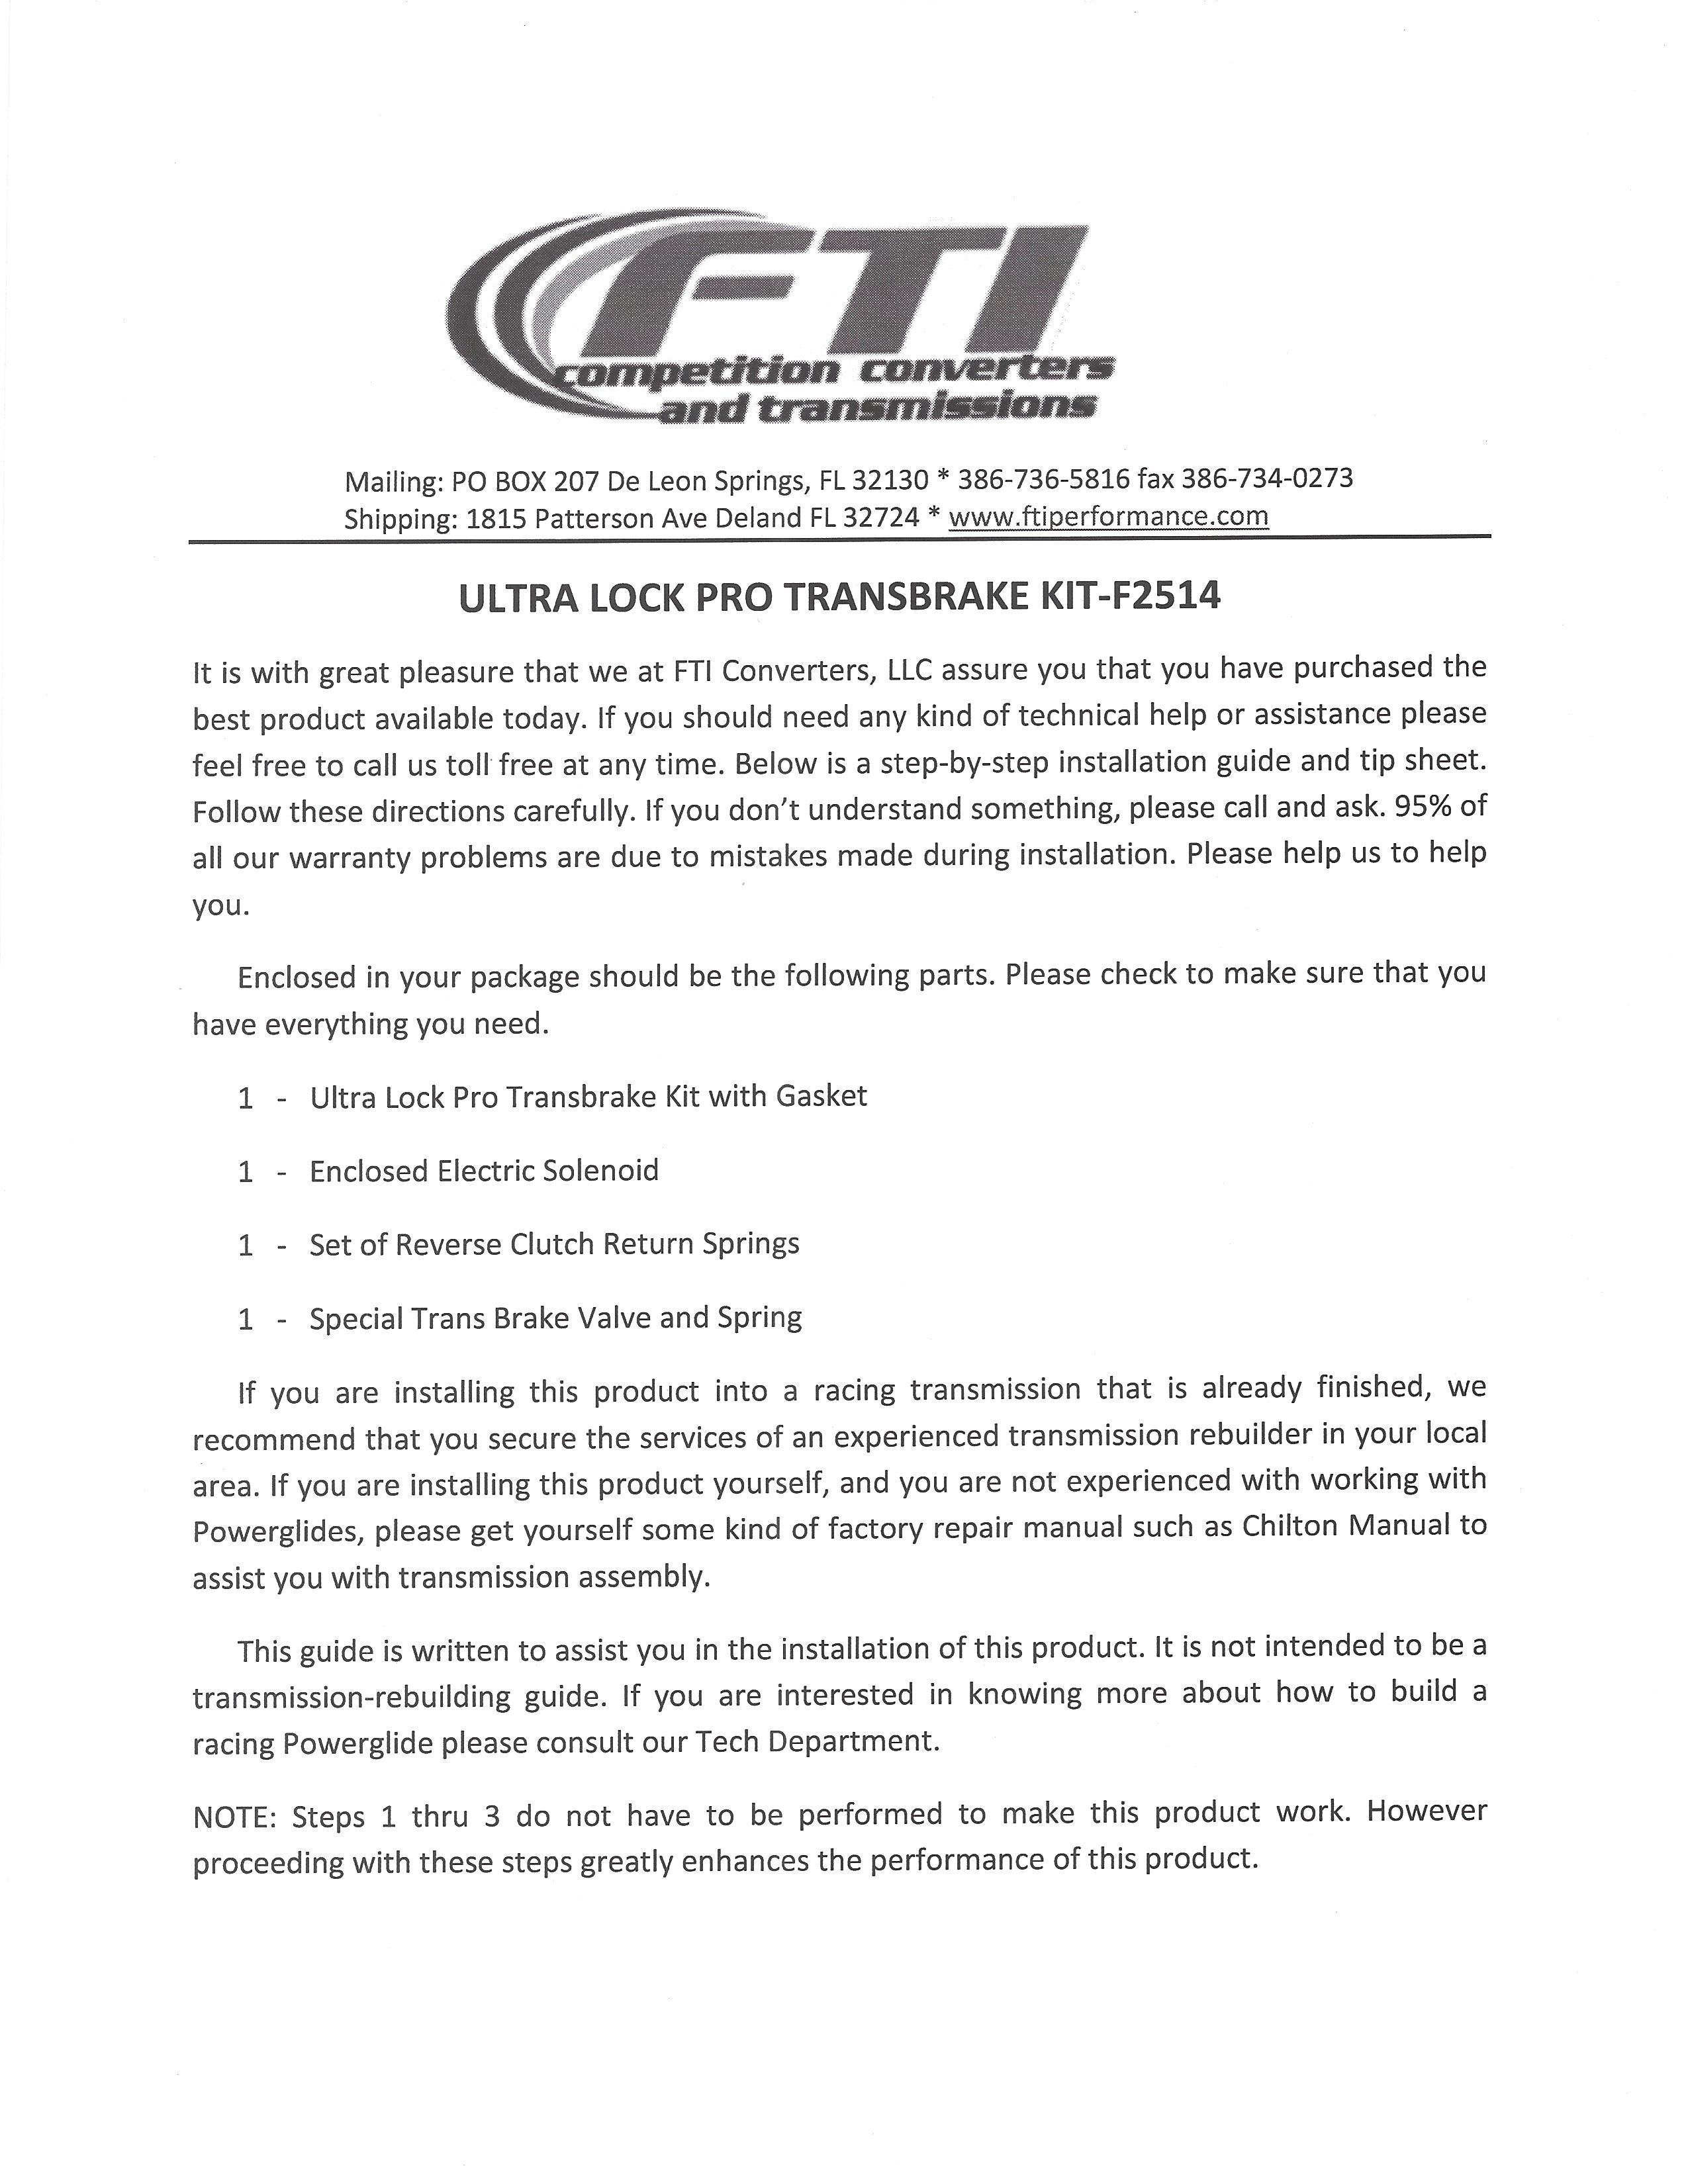 Magnificent Tci Trans Brake Wiring Diagram Component - Electrical  Rh:piotomar.info | 3300